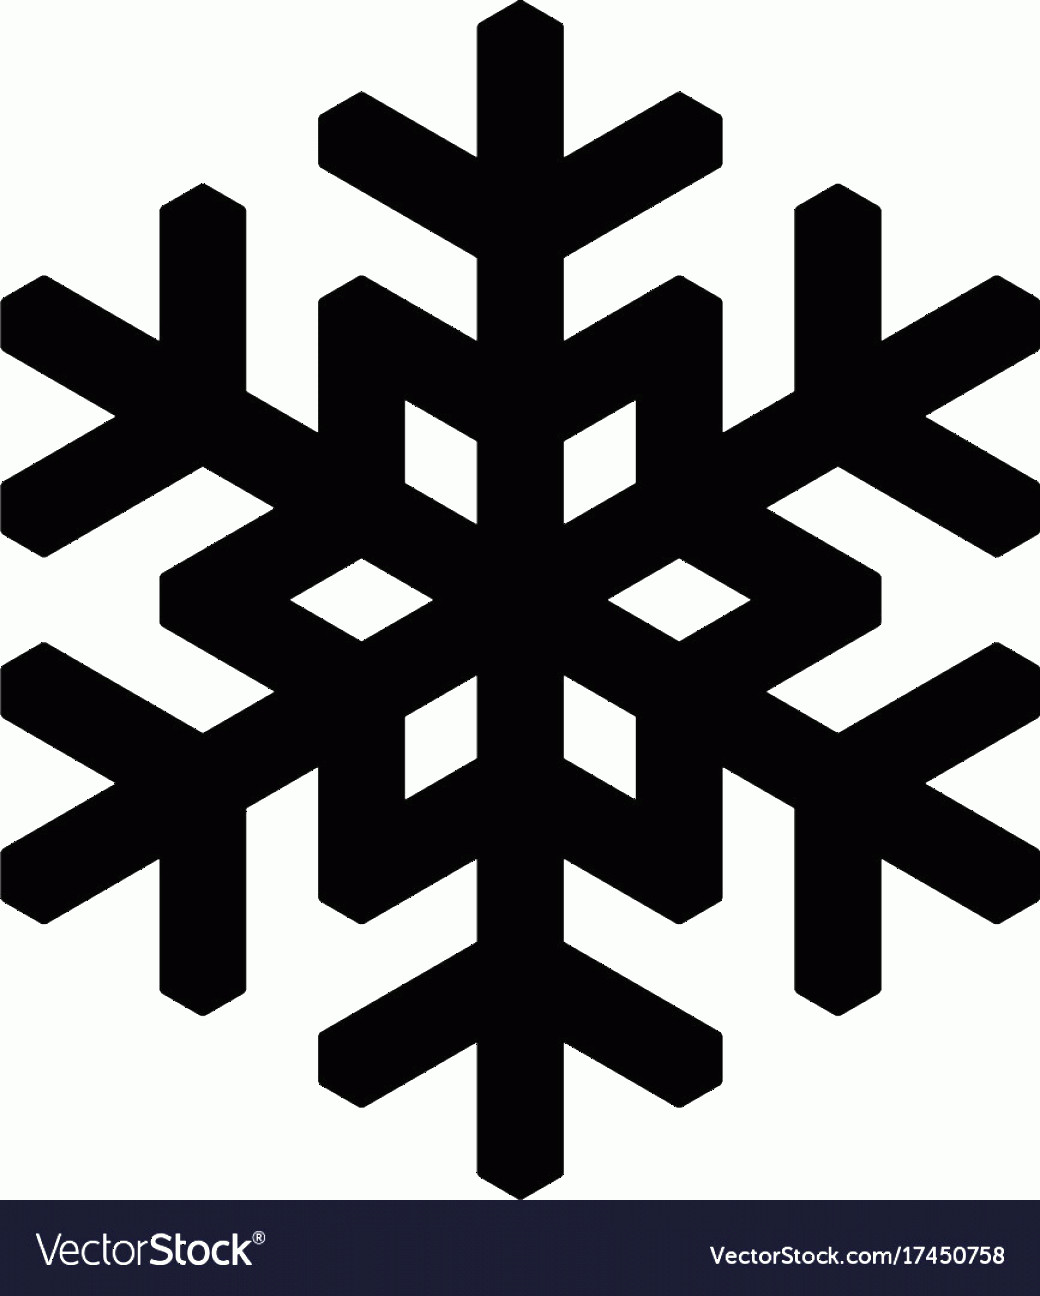 Simple Black Vector Snowflake: Snowflake Icon Christmas And Winter Theme Simple Vector